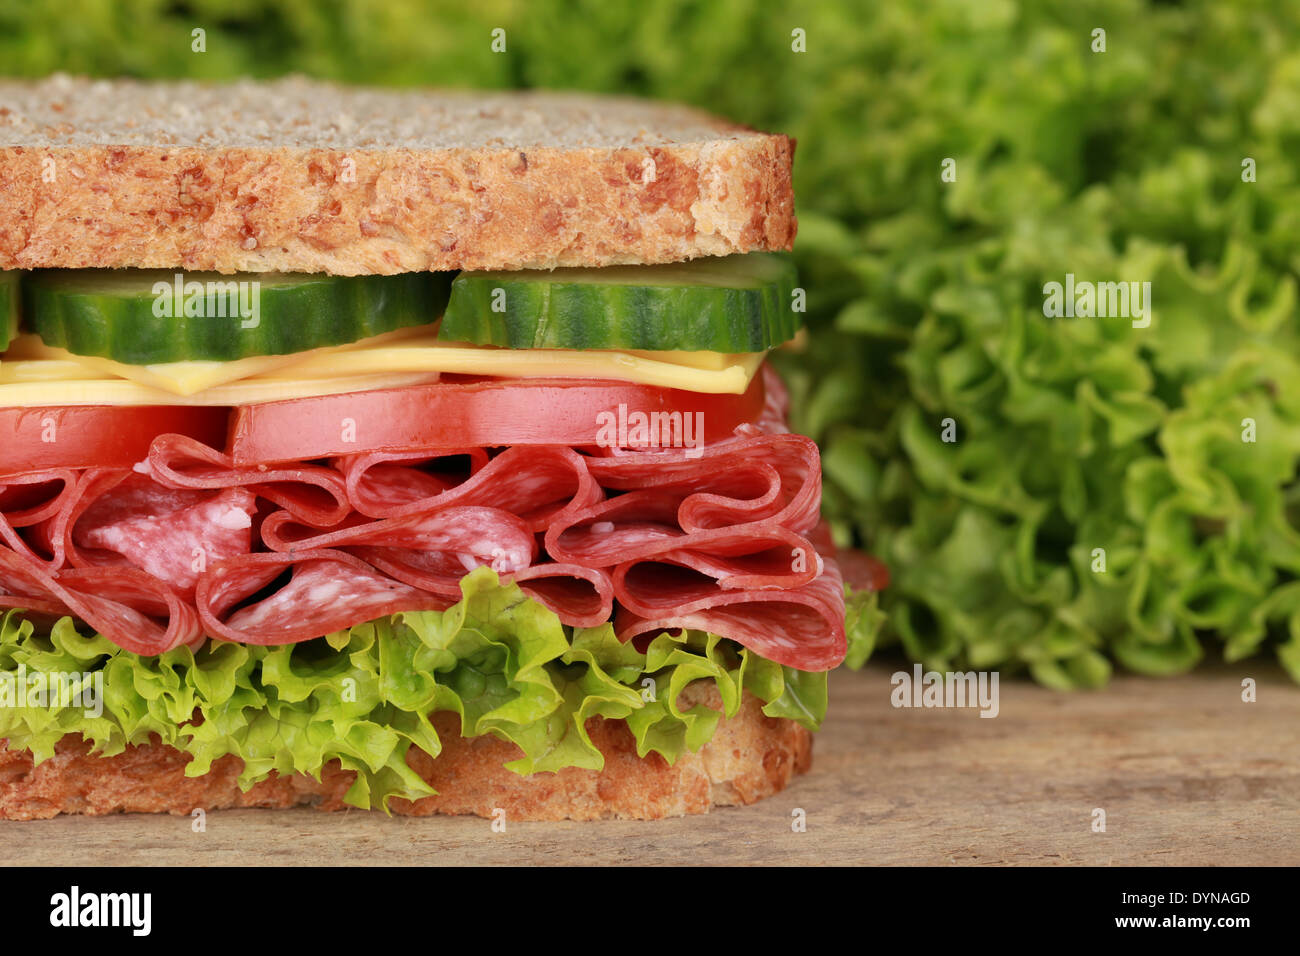 Fresh sandwich with pepperoni, cheese, tomatoes, lettuce and cucumber, lots of copyspace - Stock Image